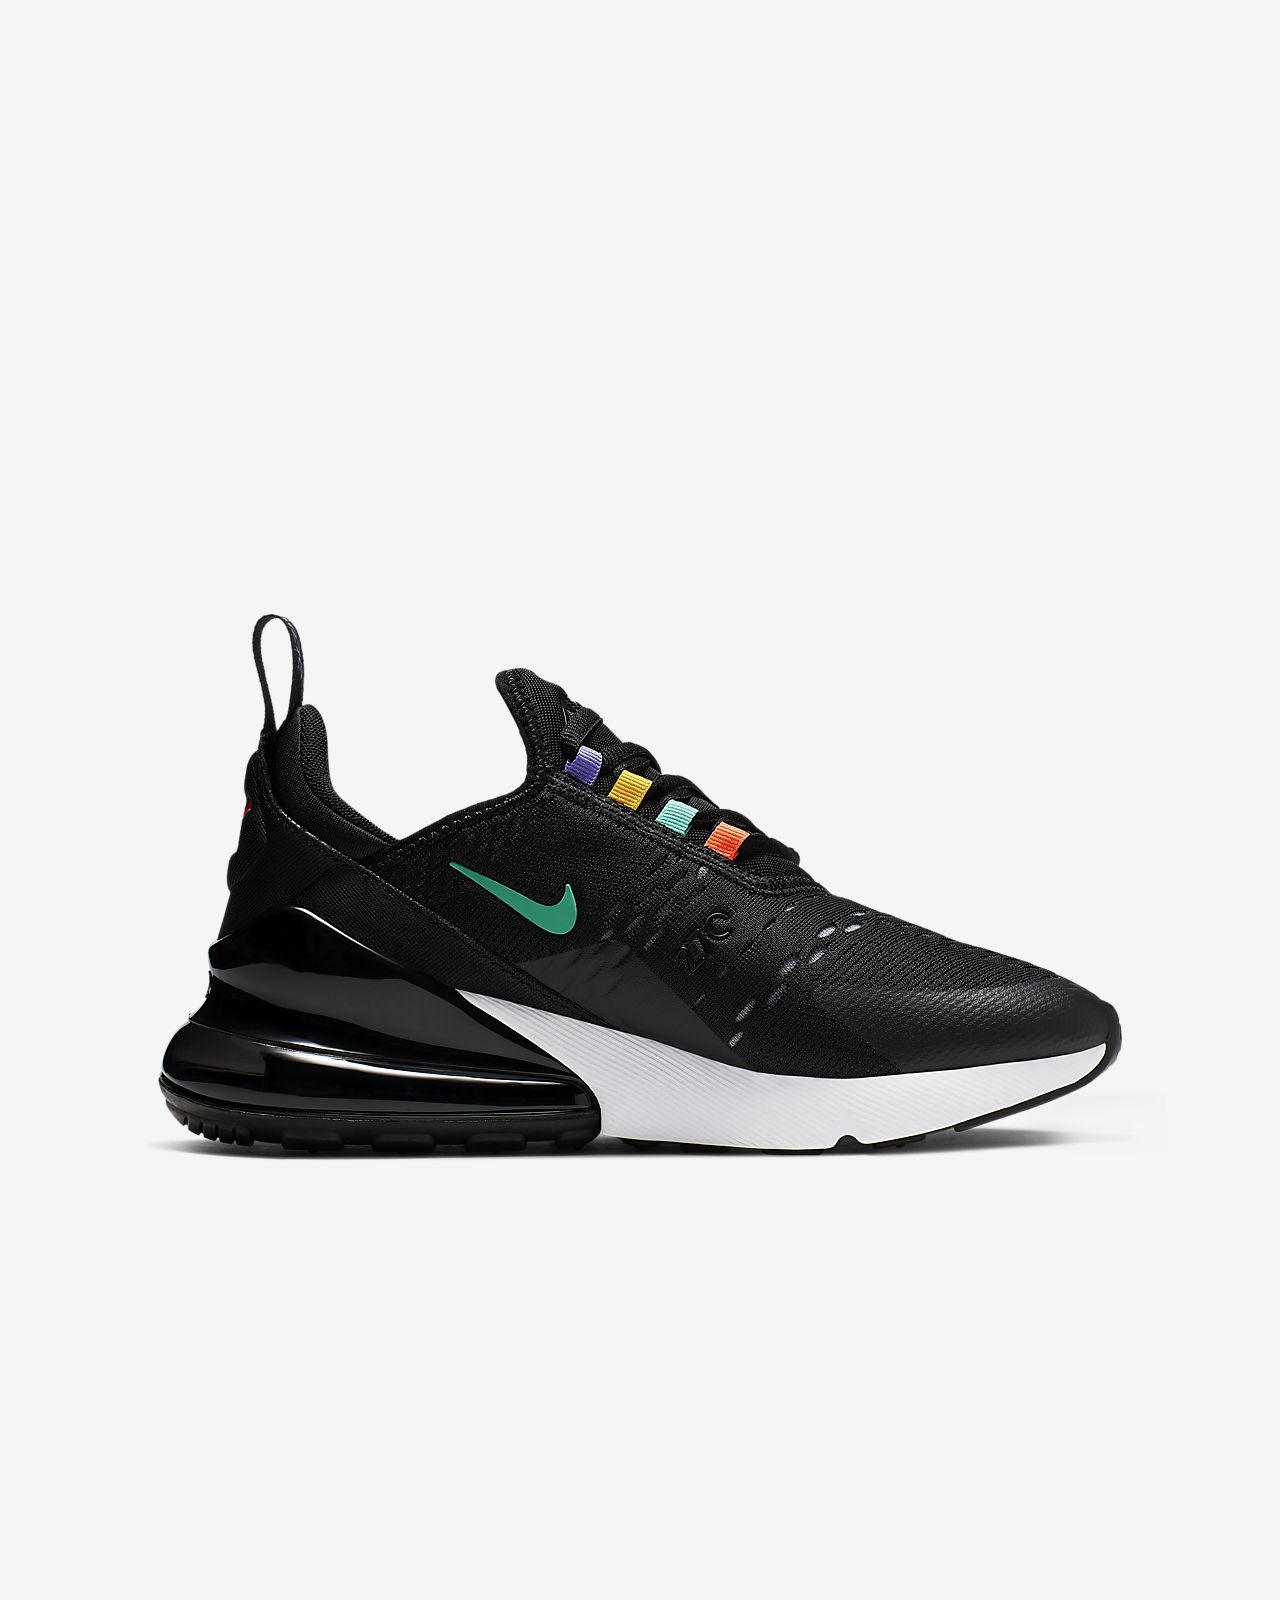 Sko Nike Air Max 270 Game Change för ungdom